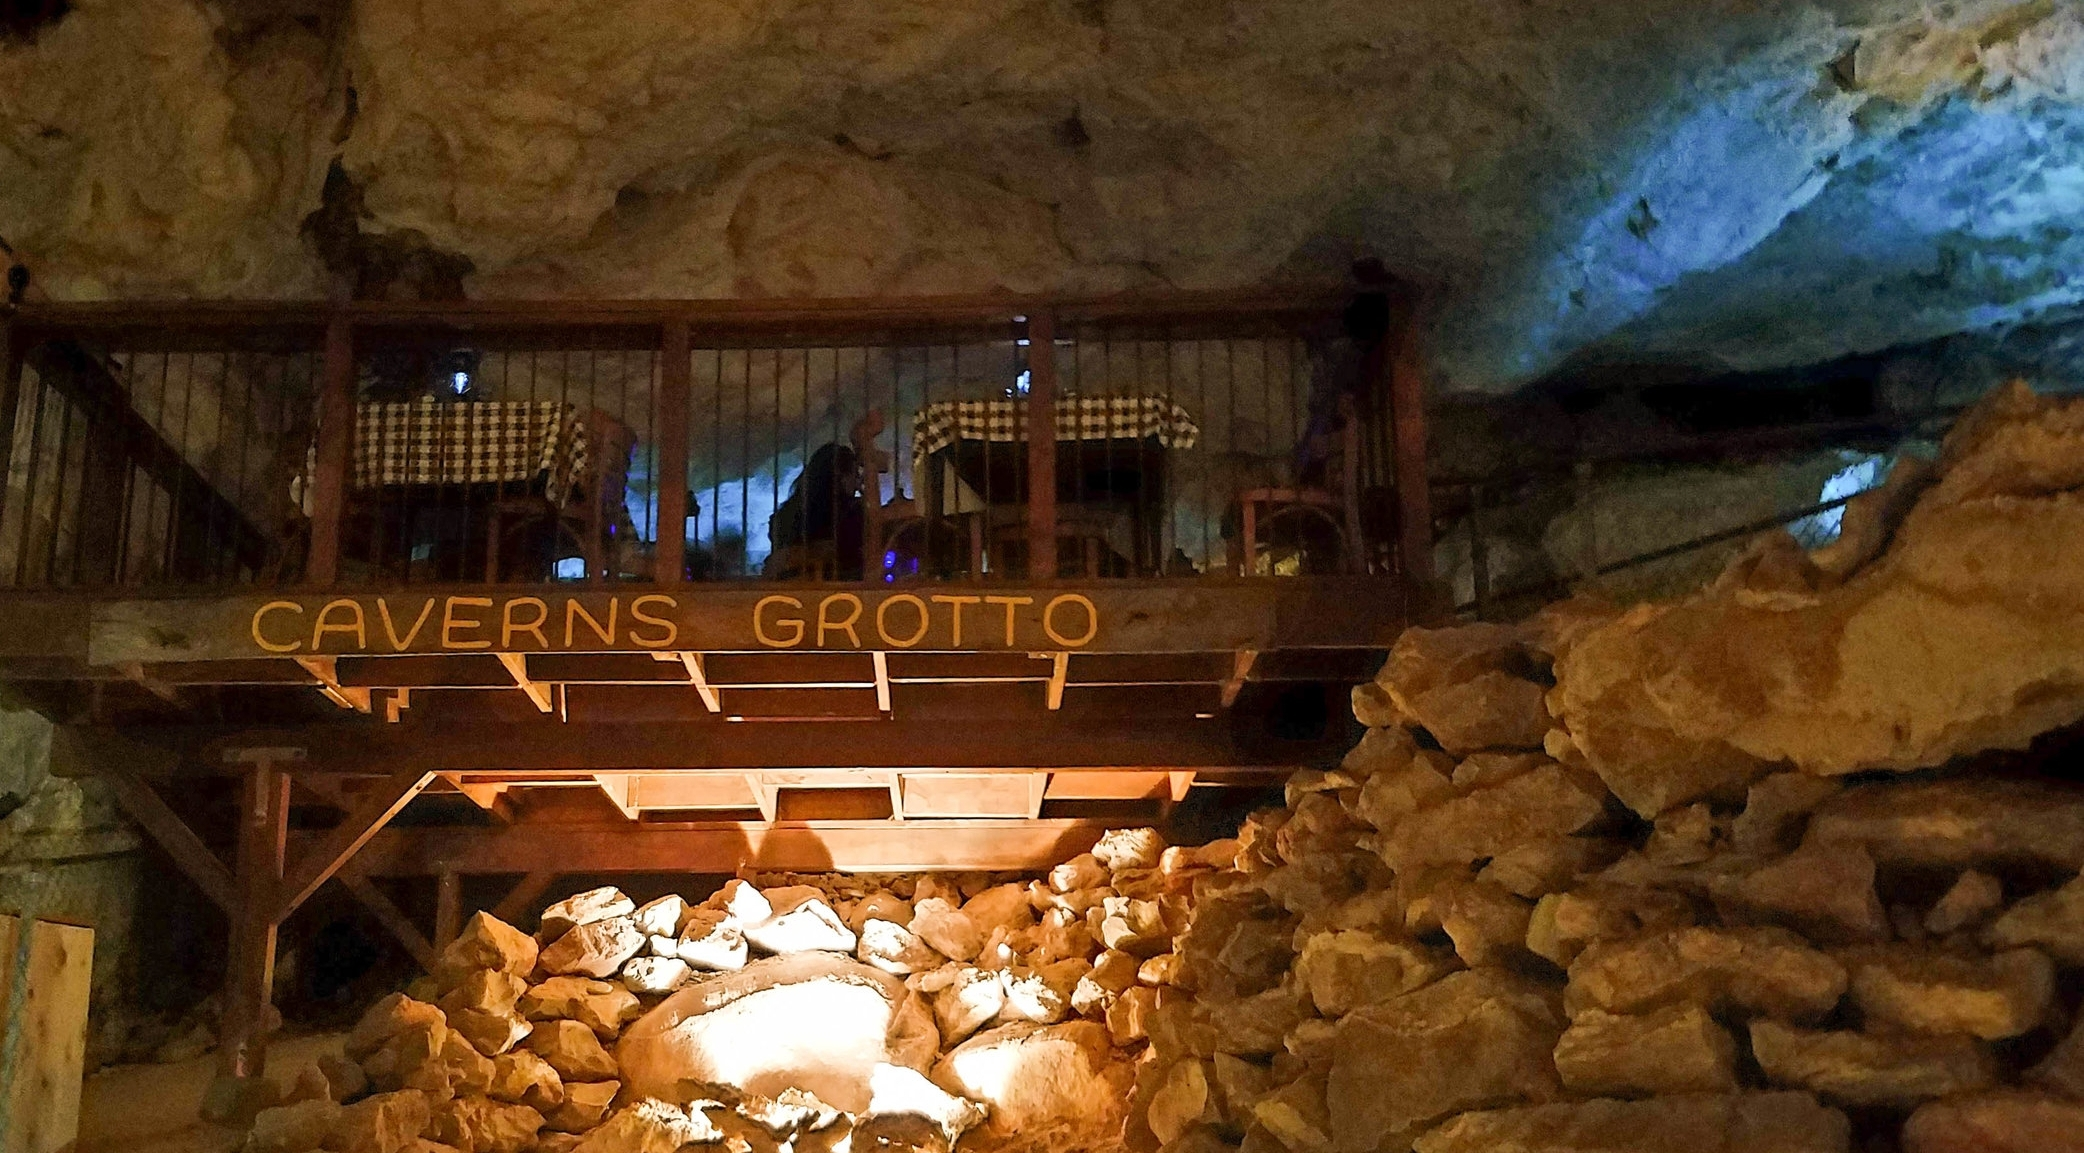 grand-canyon-caverns-grotto-restaurant